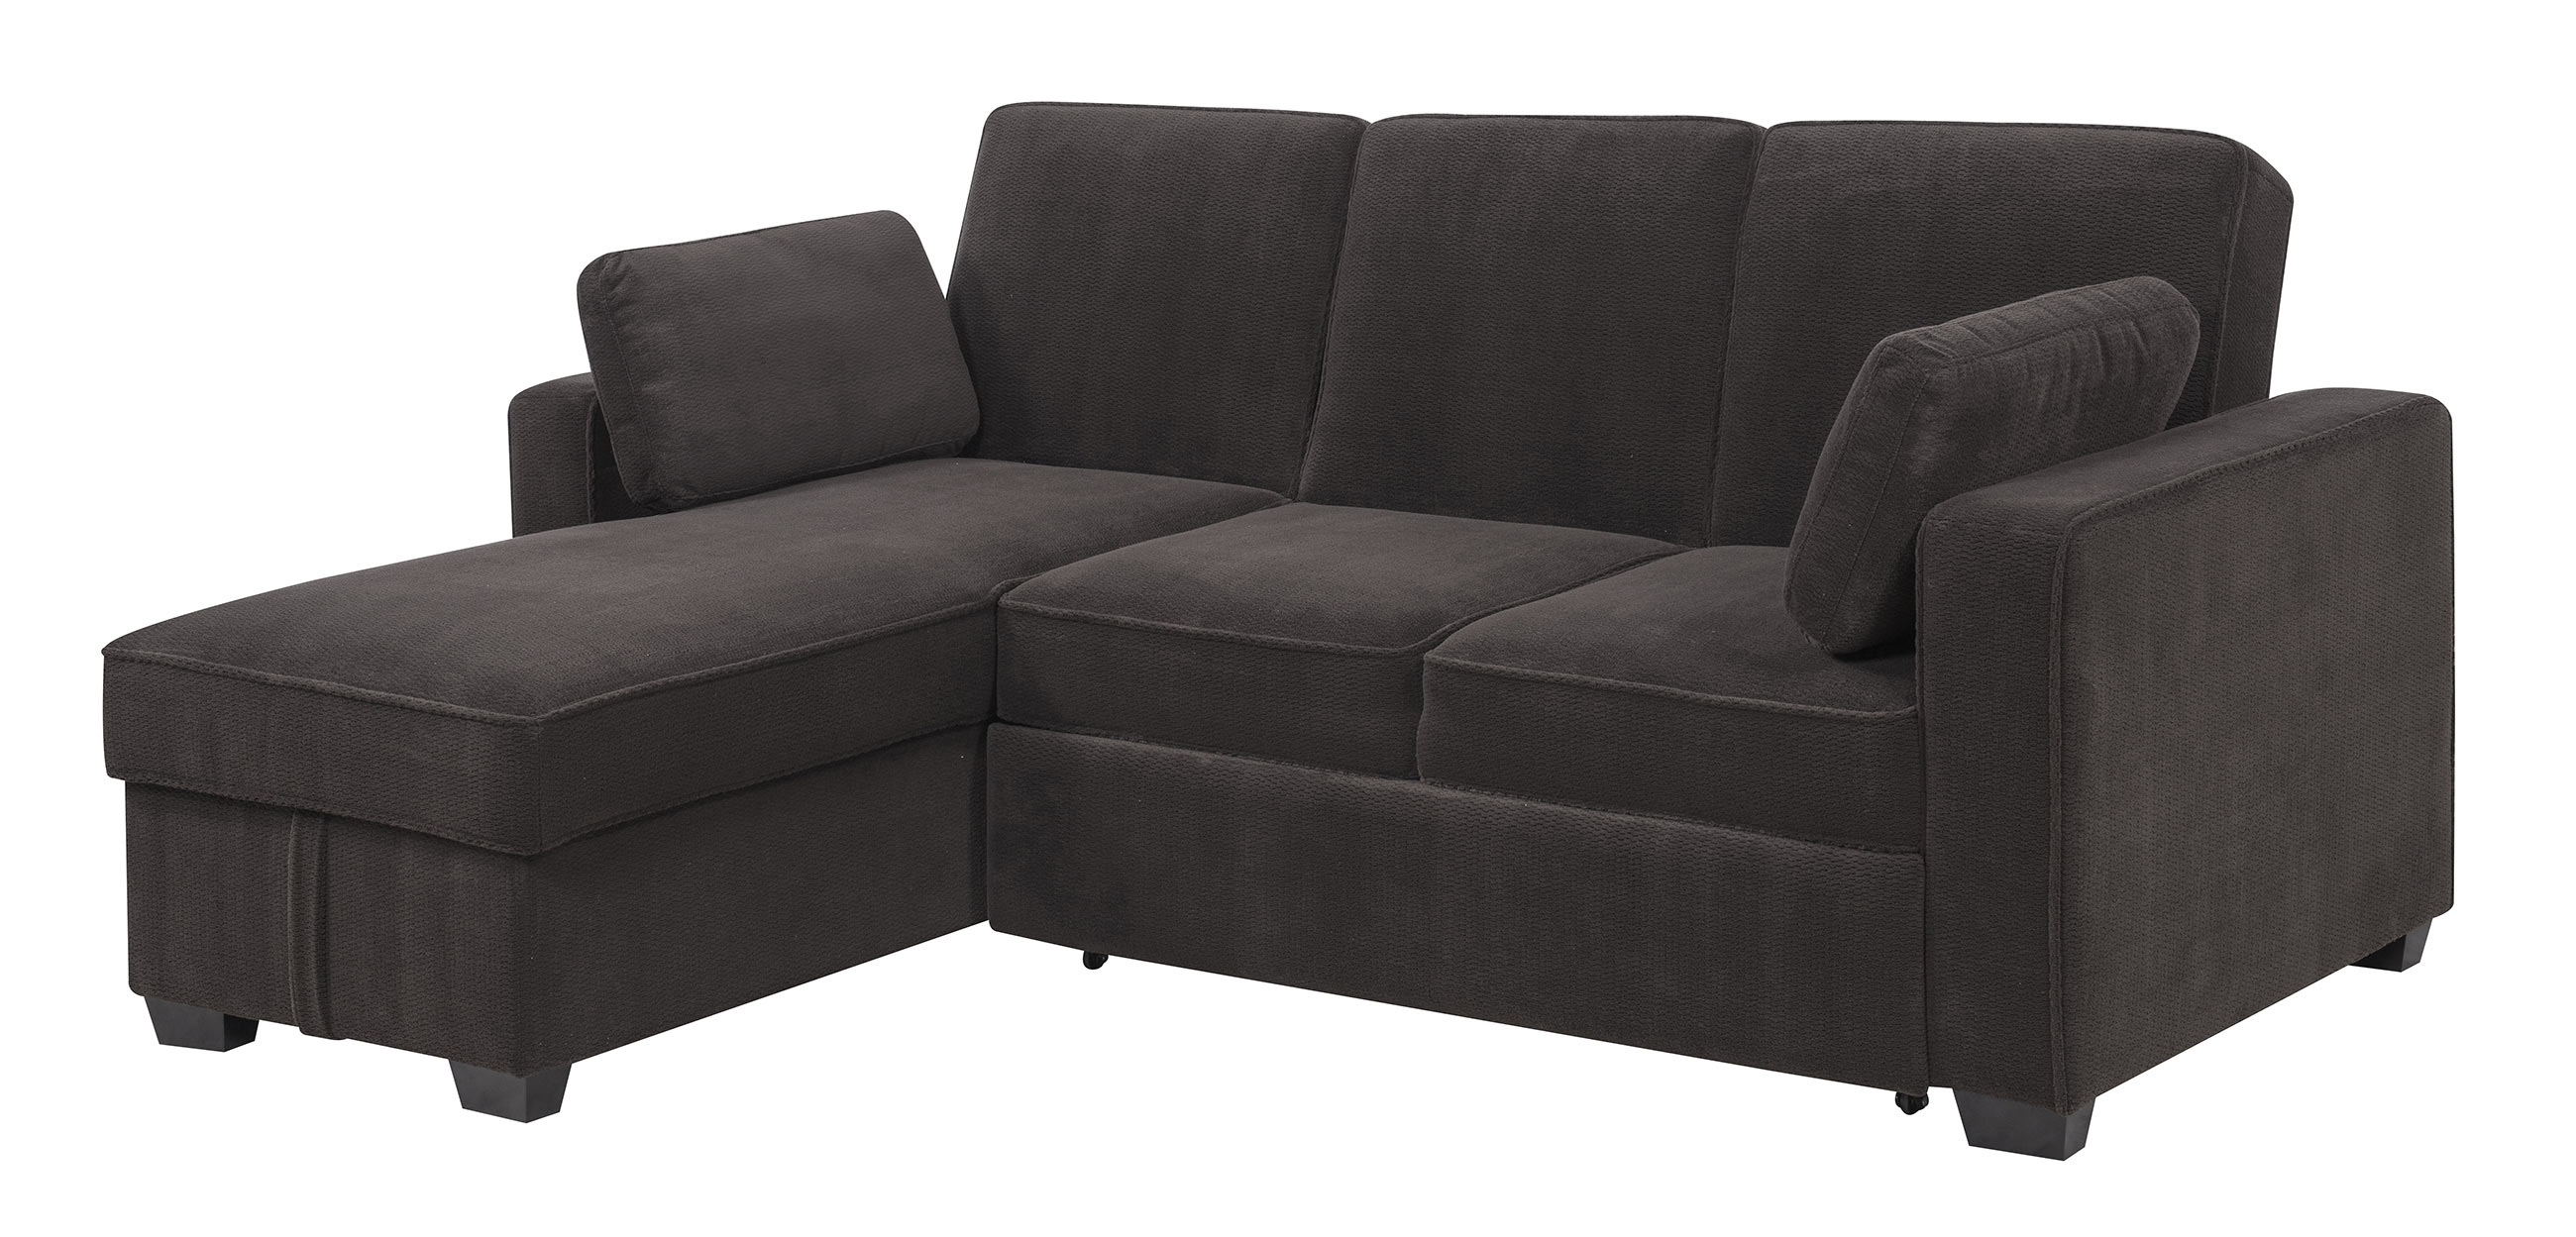 daria serta gray convertible sofa sitting pretty sofas chaela sectional dark grey by